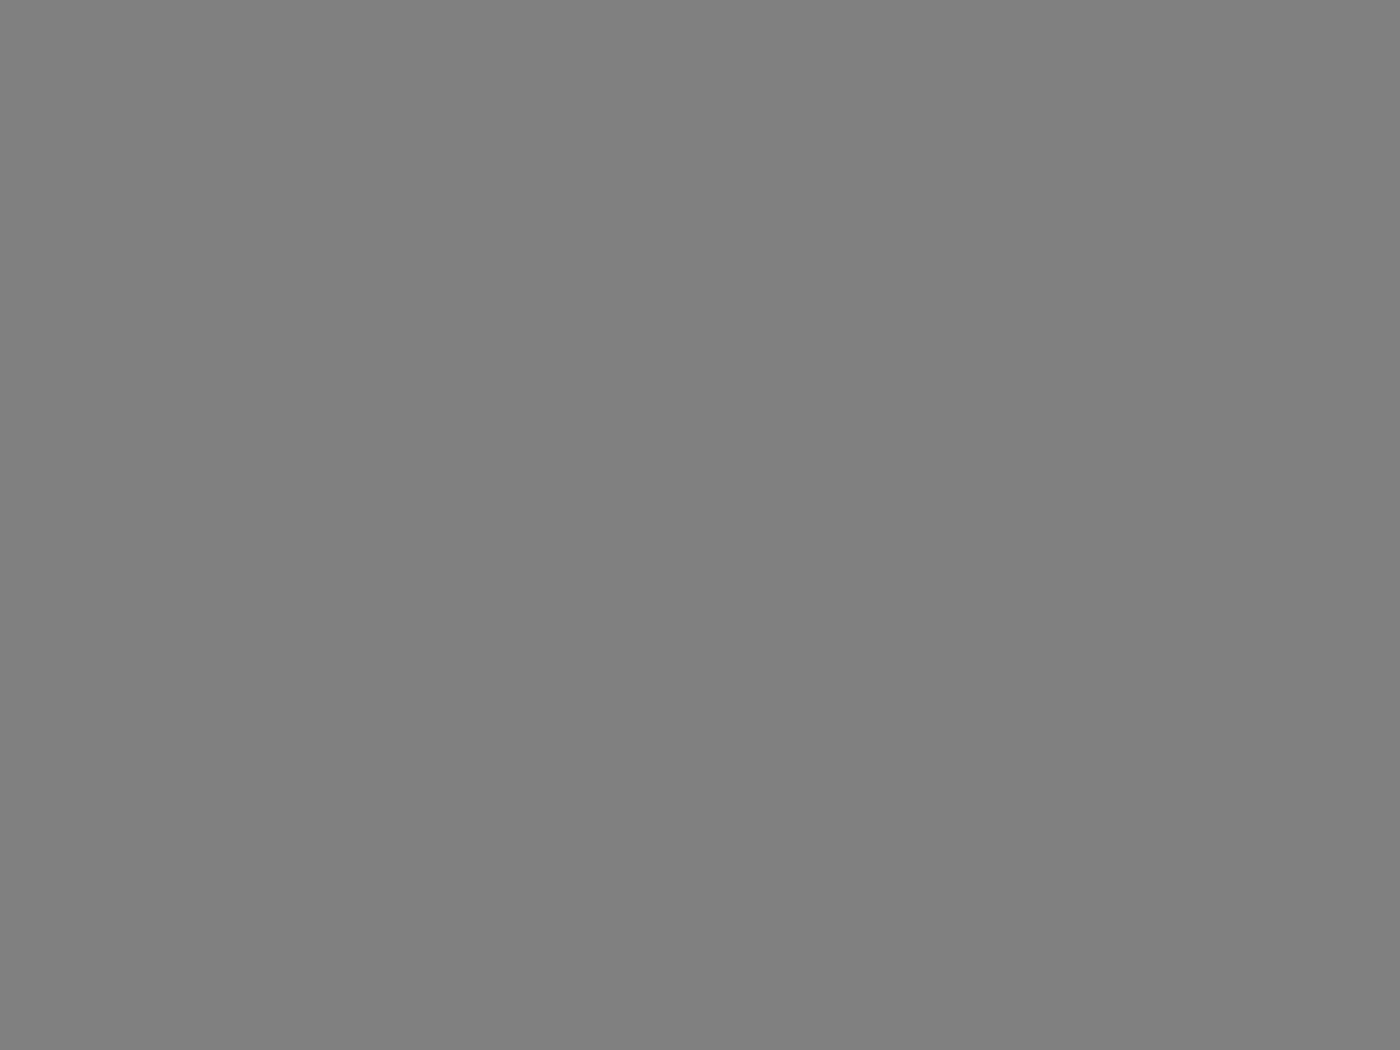 1400x1050 Gray Solid Color Background